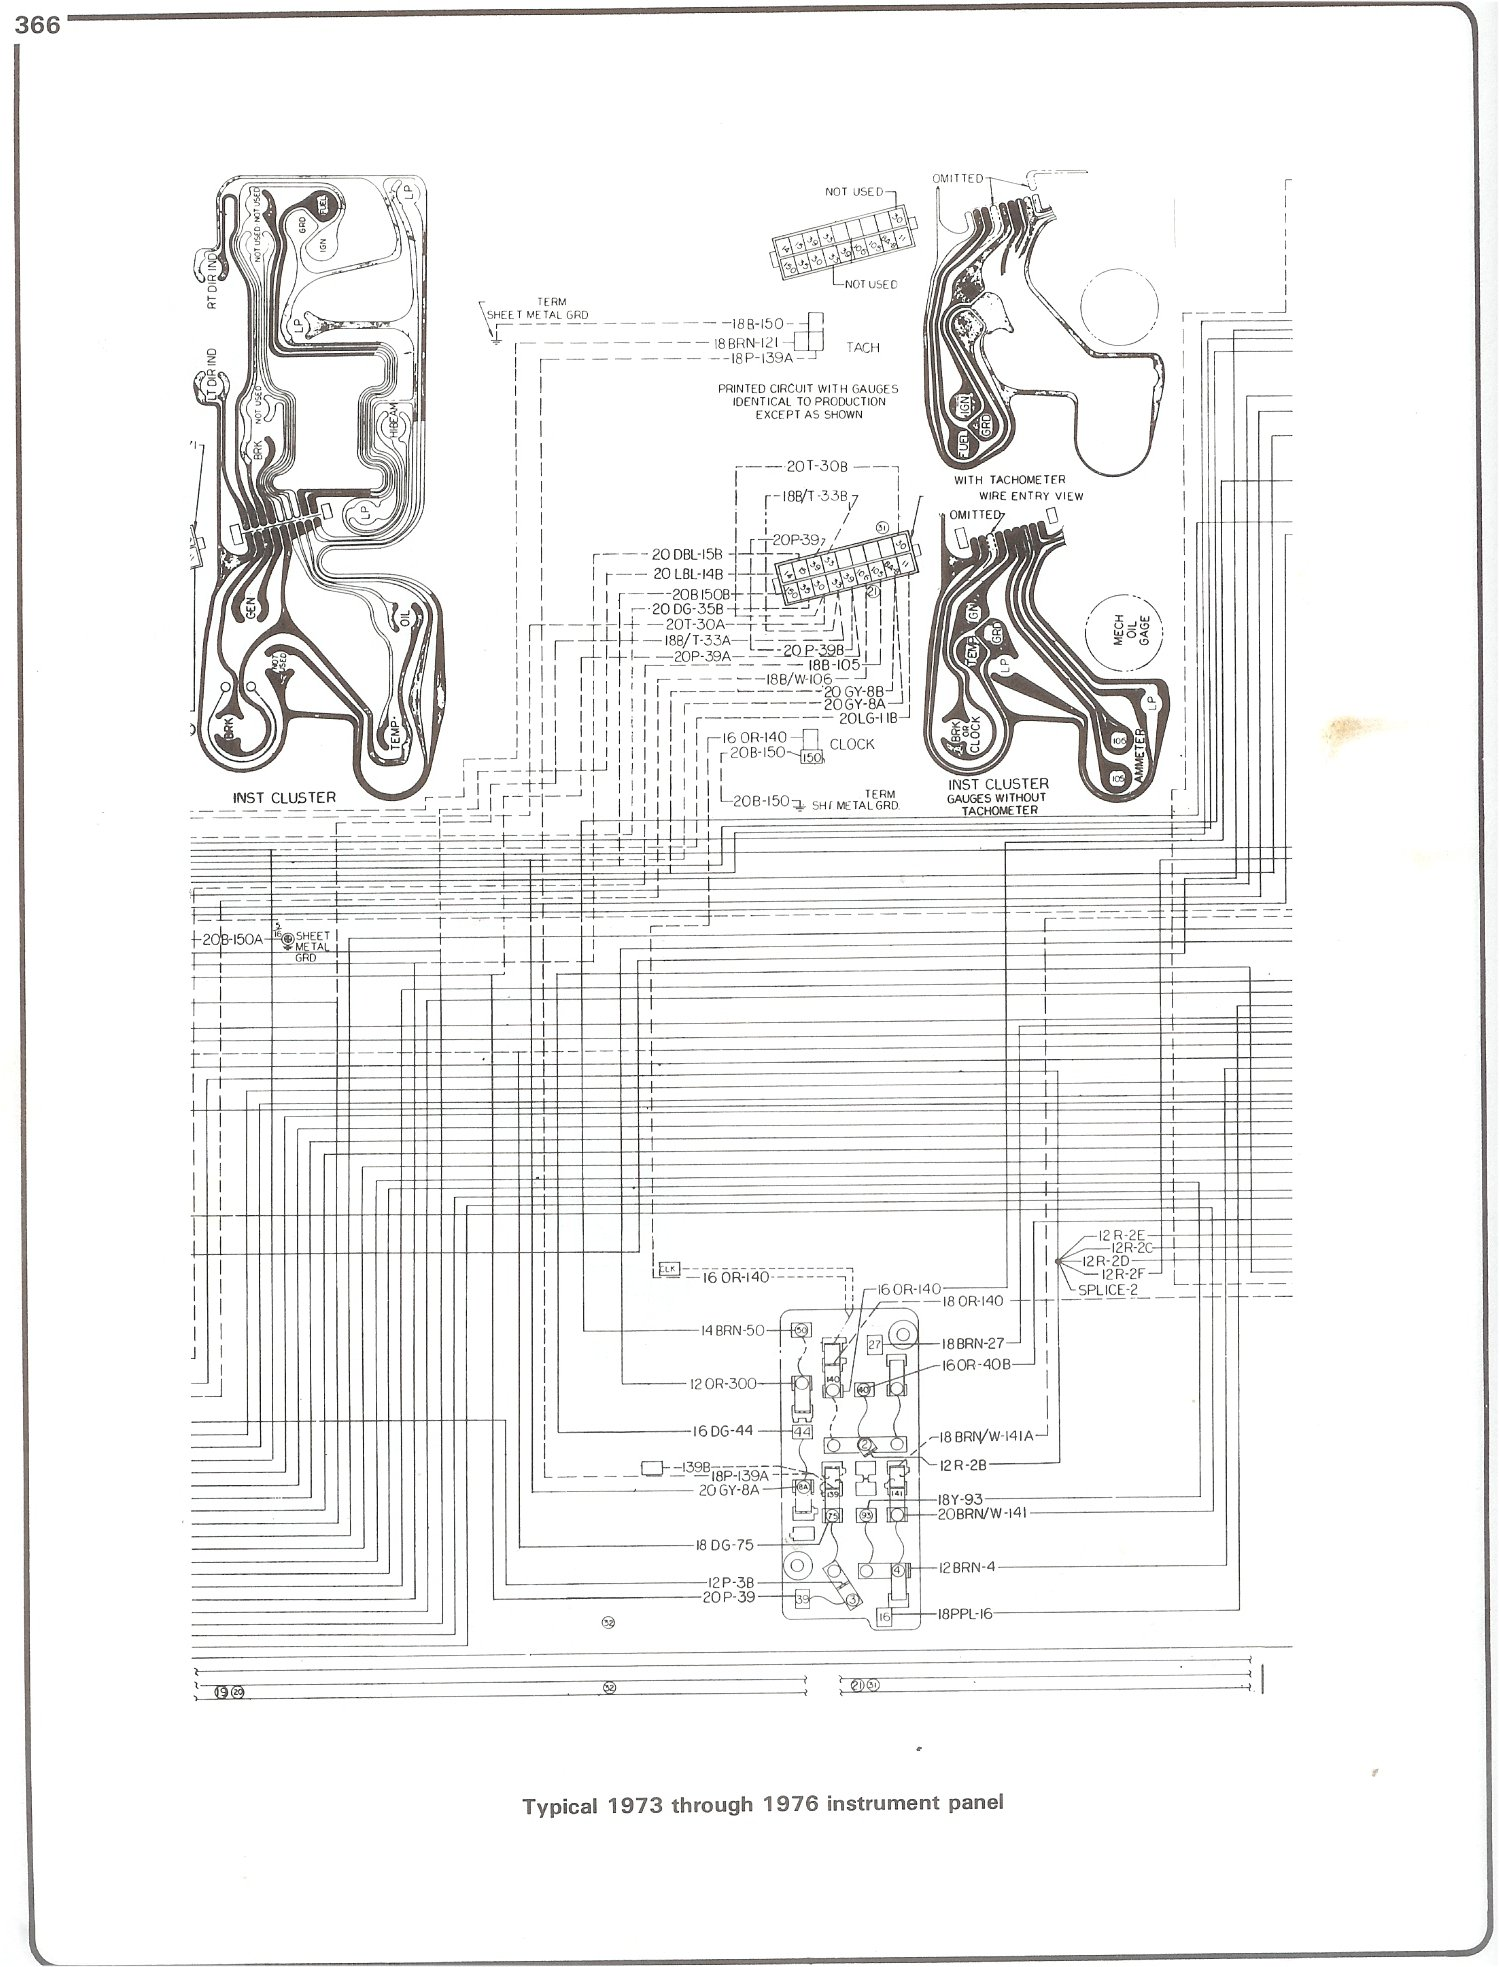 73 76_instrument complete 73 87 wiring diagrams 1978 chevy truck fuse box diagram at edmiracle.co